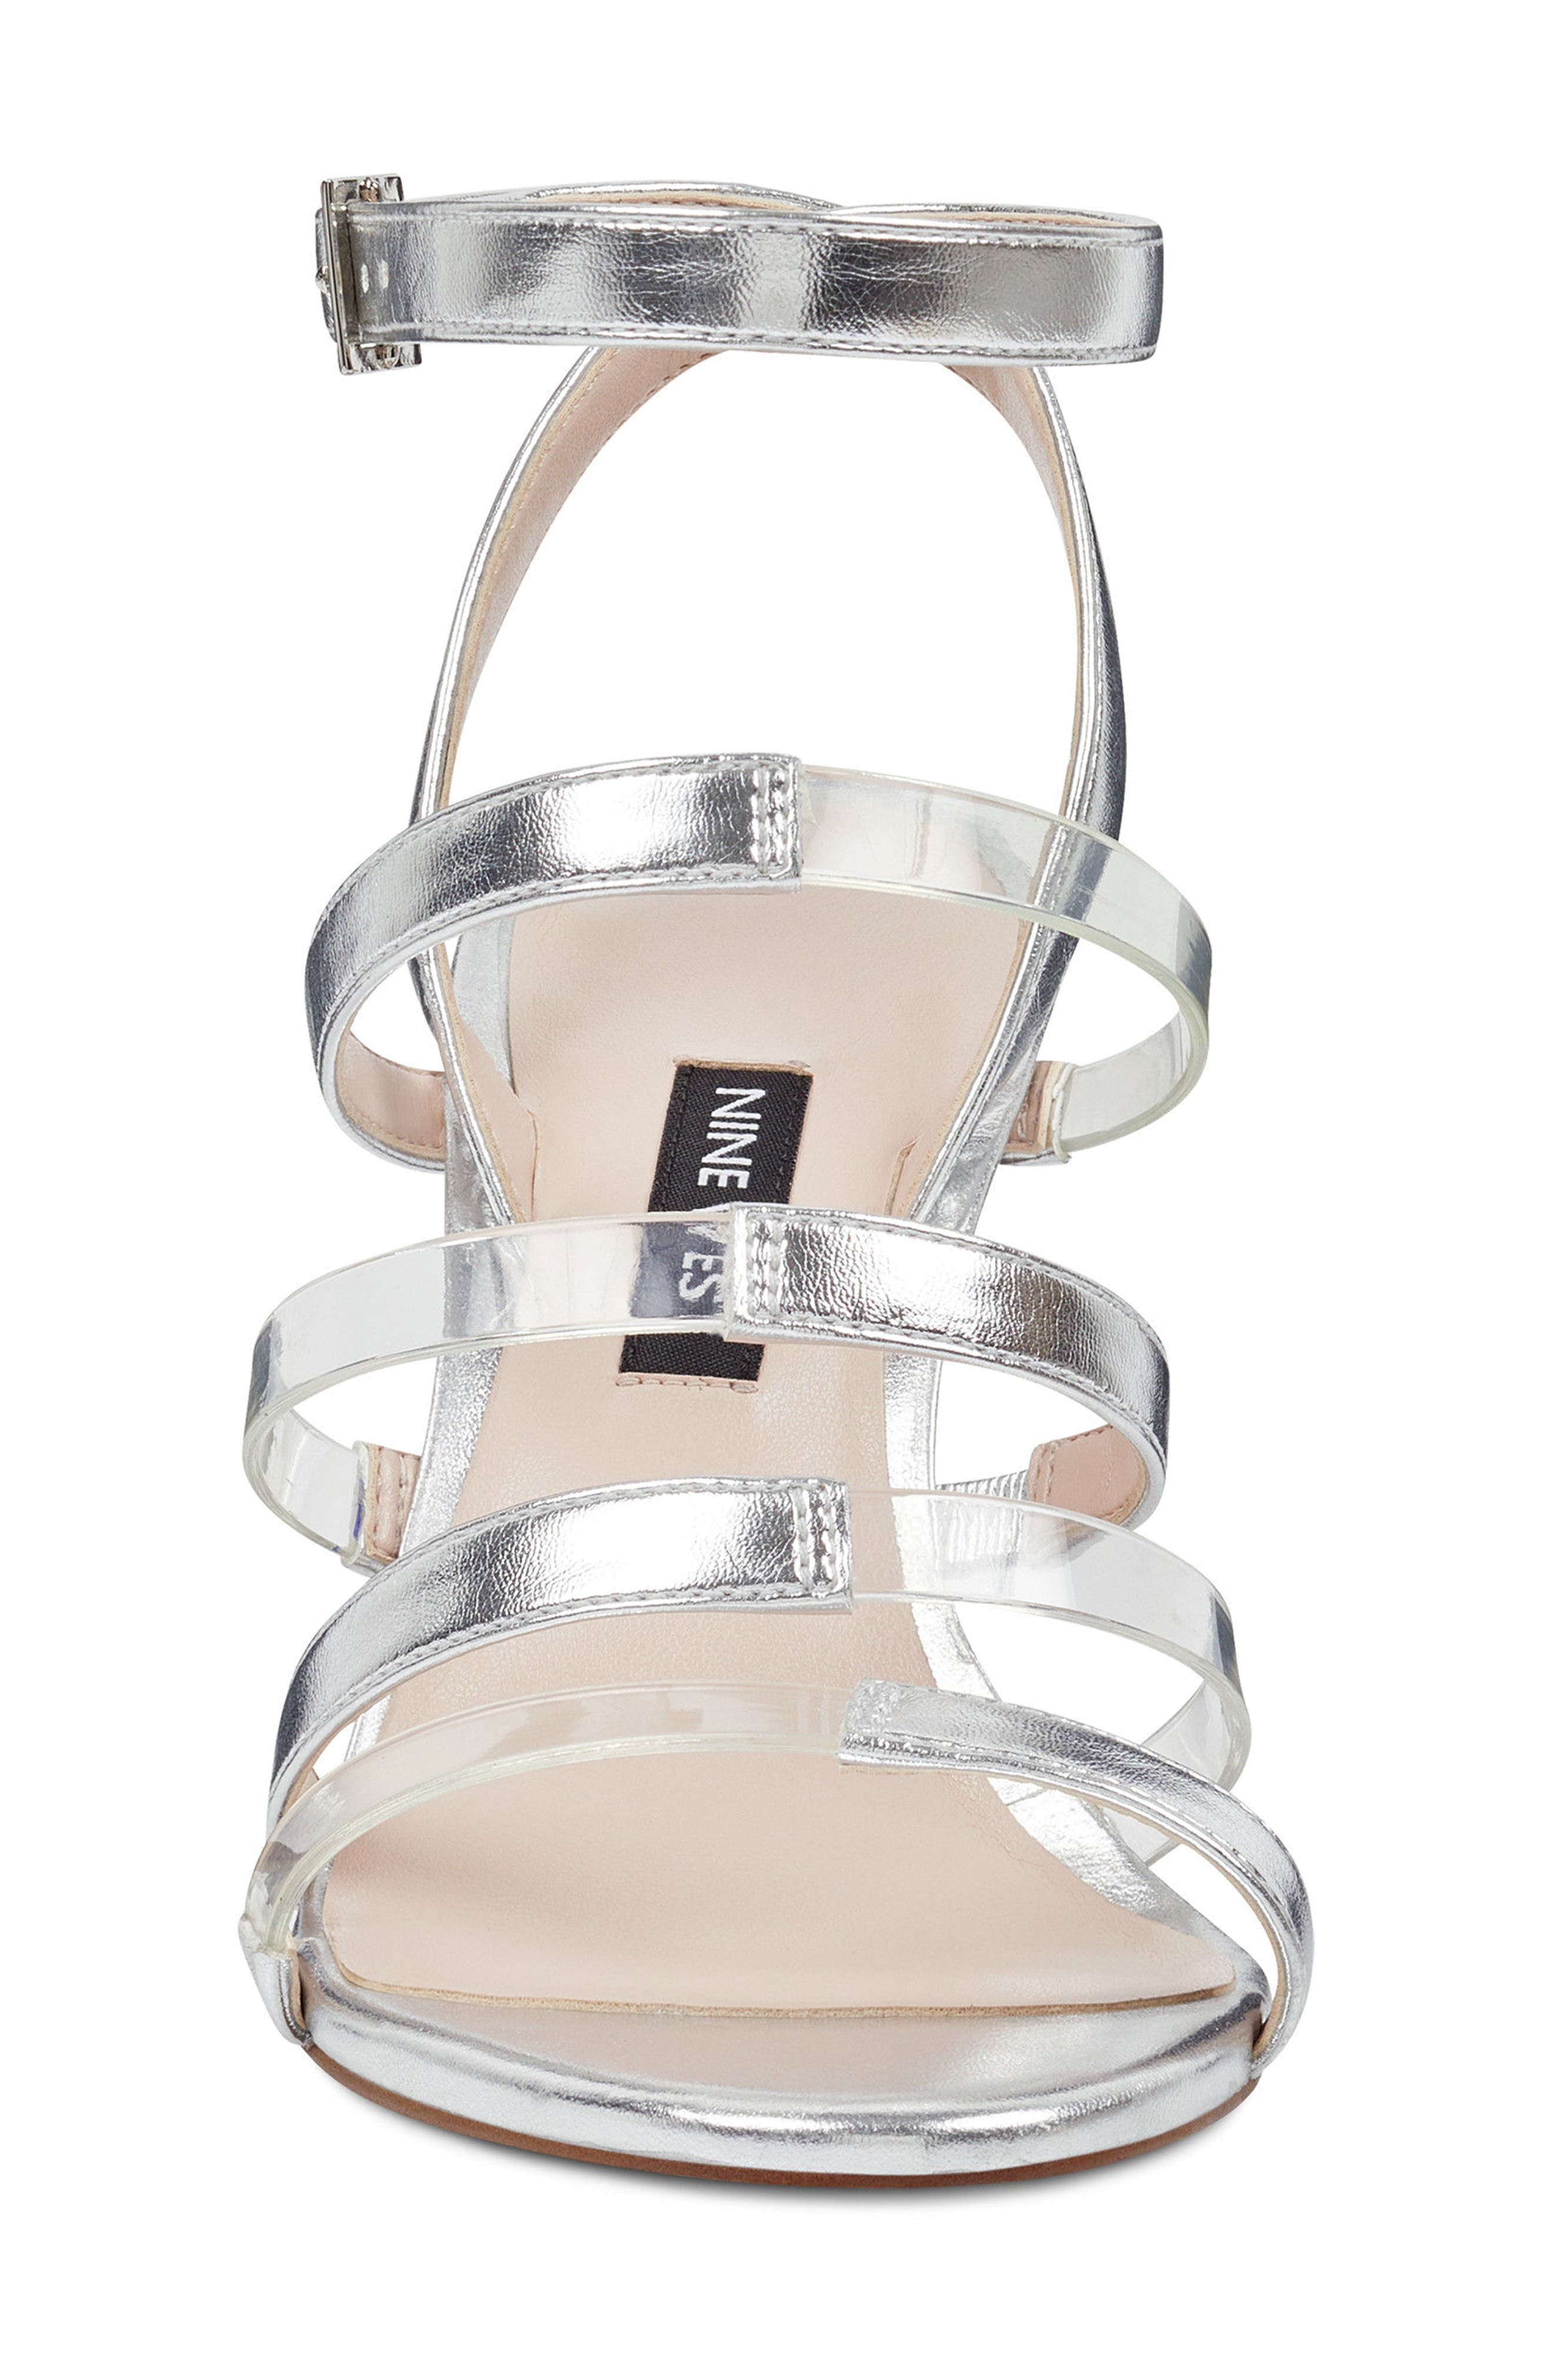 Fazzani Cage Sandal,                             Alternate thumbnail 4, color,                             CLEAR/ SILVER FAUX LEATHER